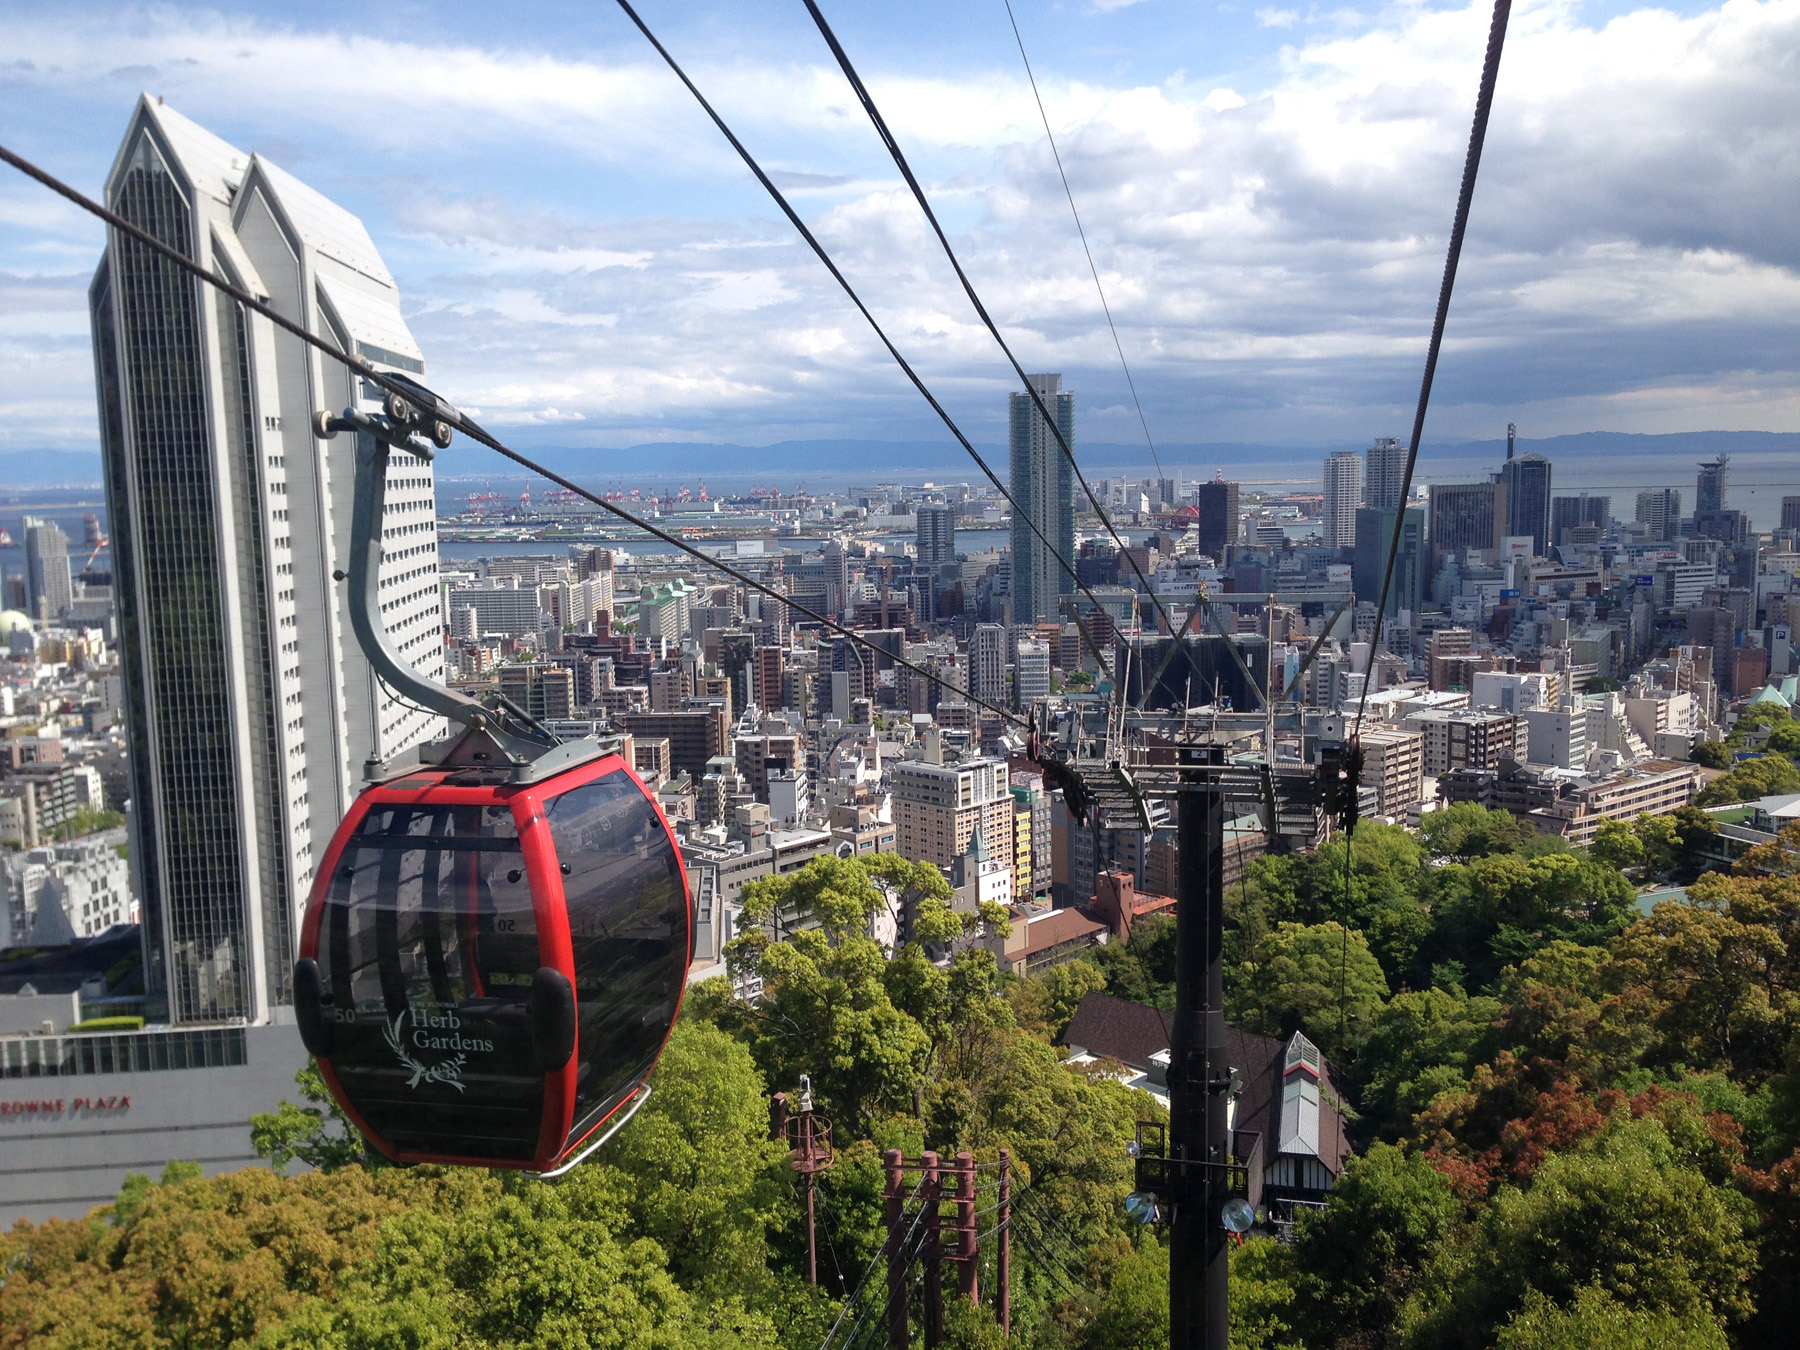 Amazing Ropeway Pictures & Backgrounds